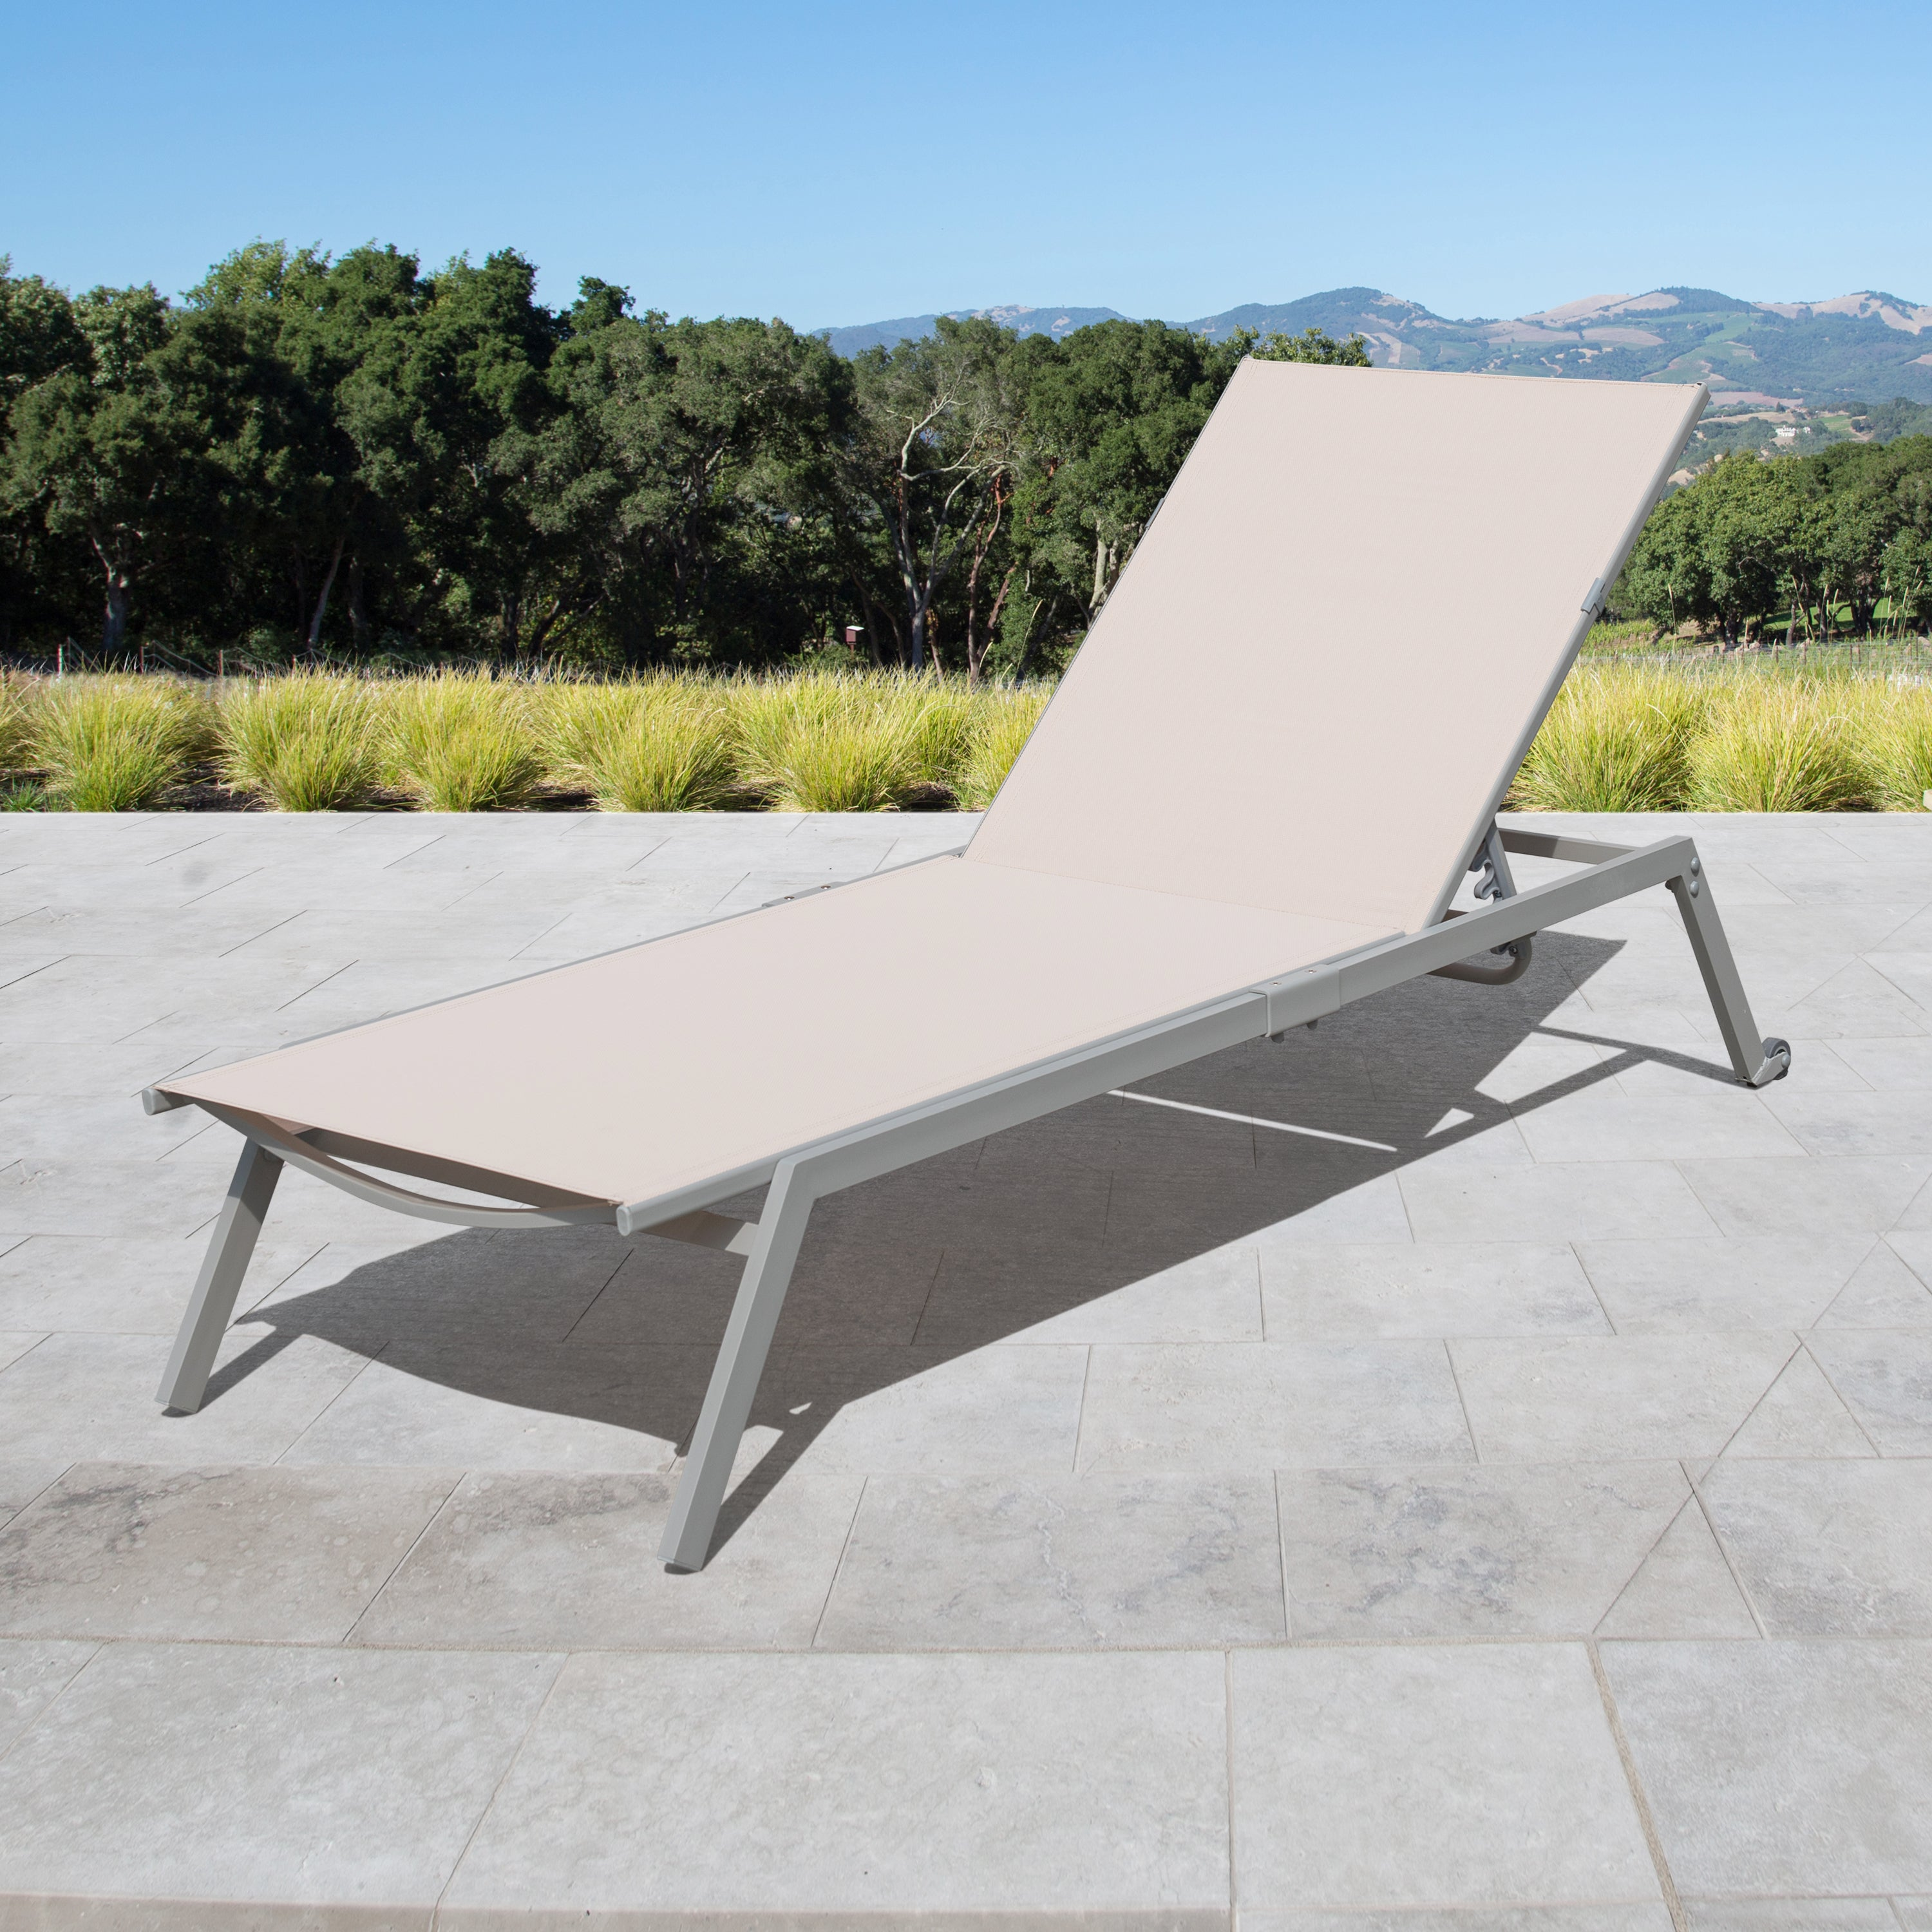 chaise collection of lounges outdoor recliners inside chairs preferred lounge accent furniture best pool patio modern